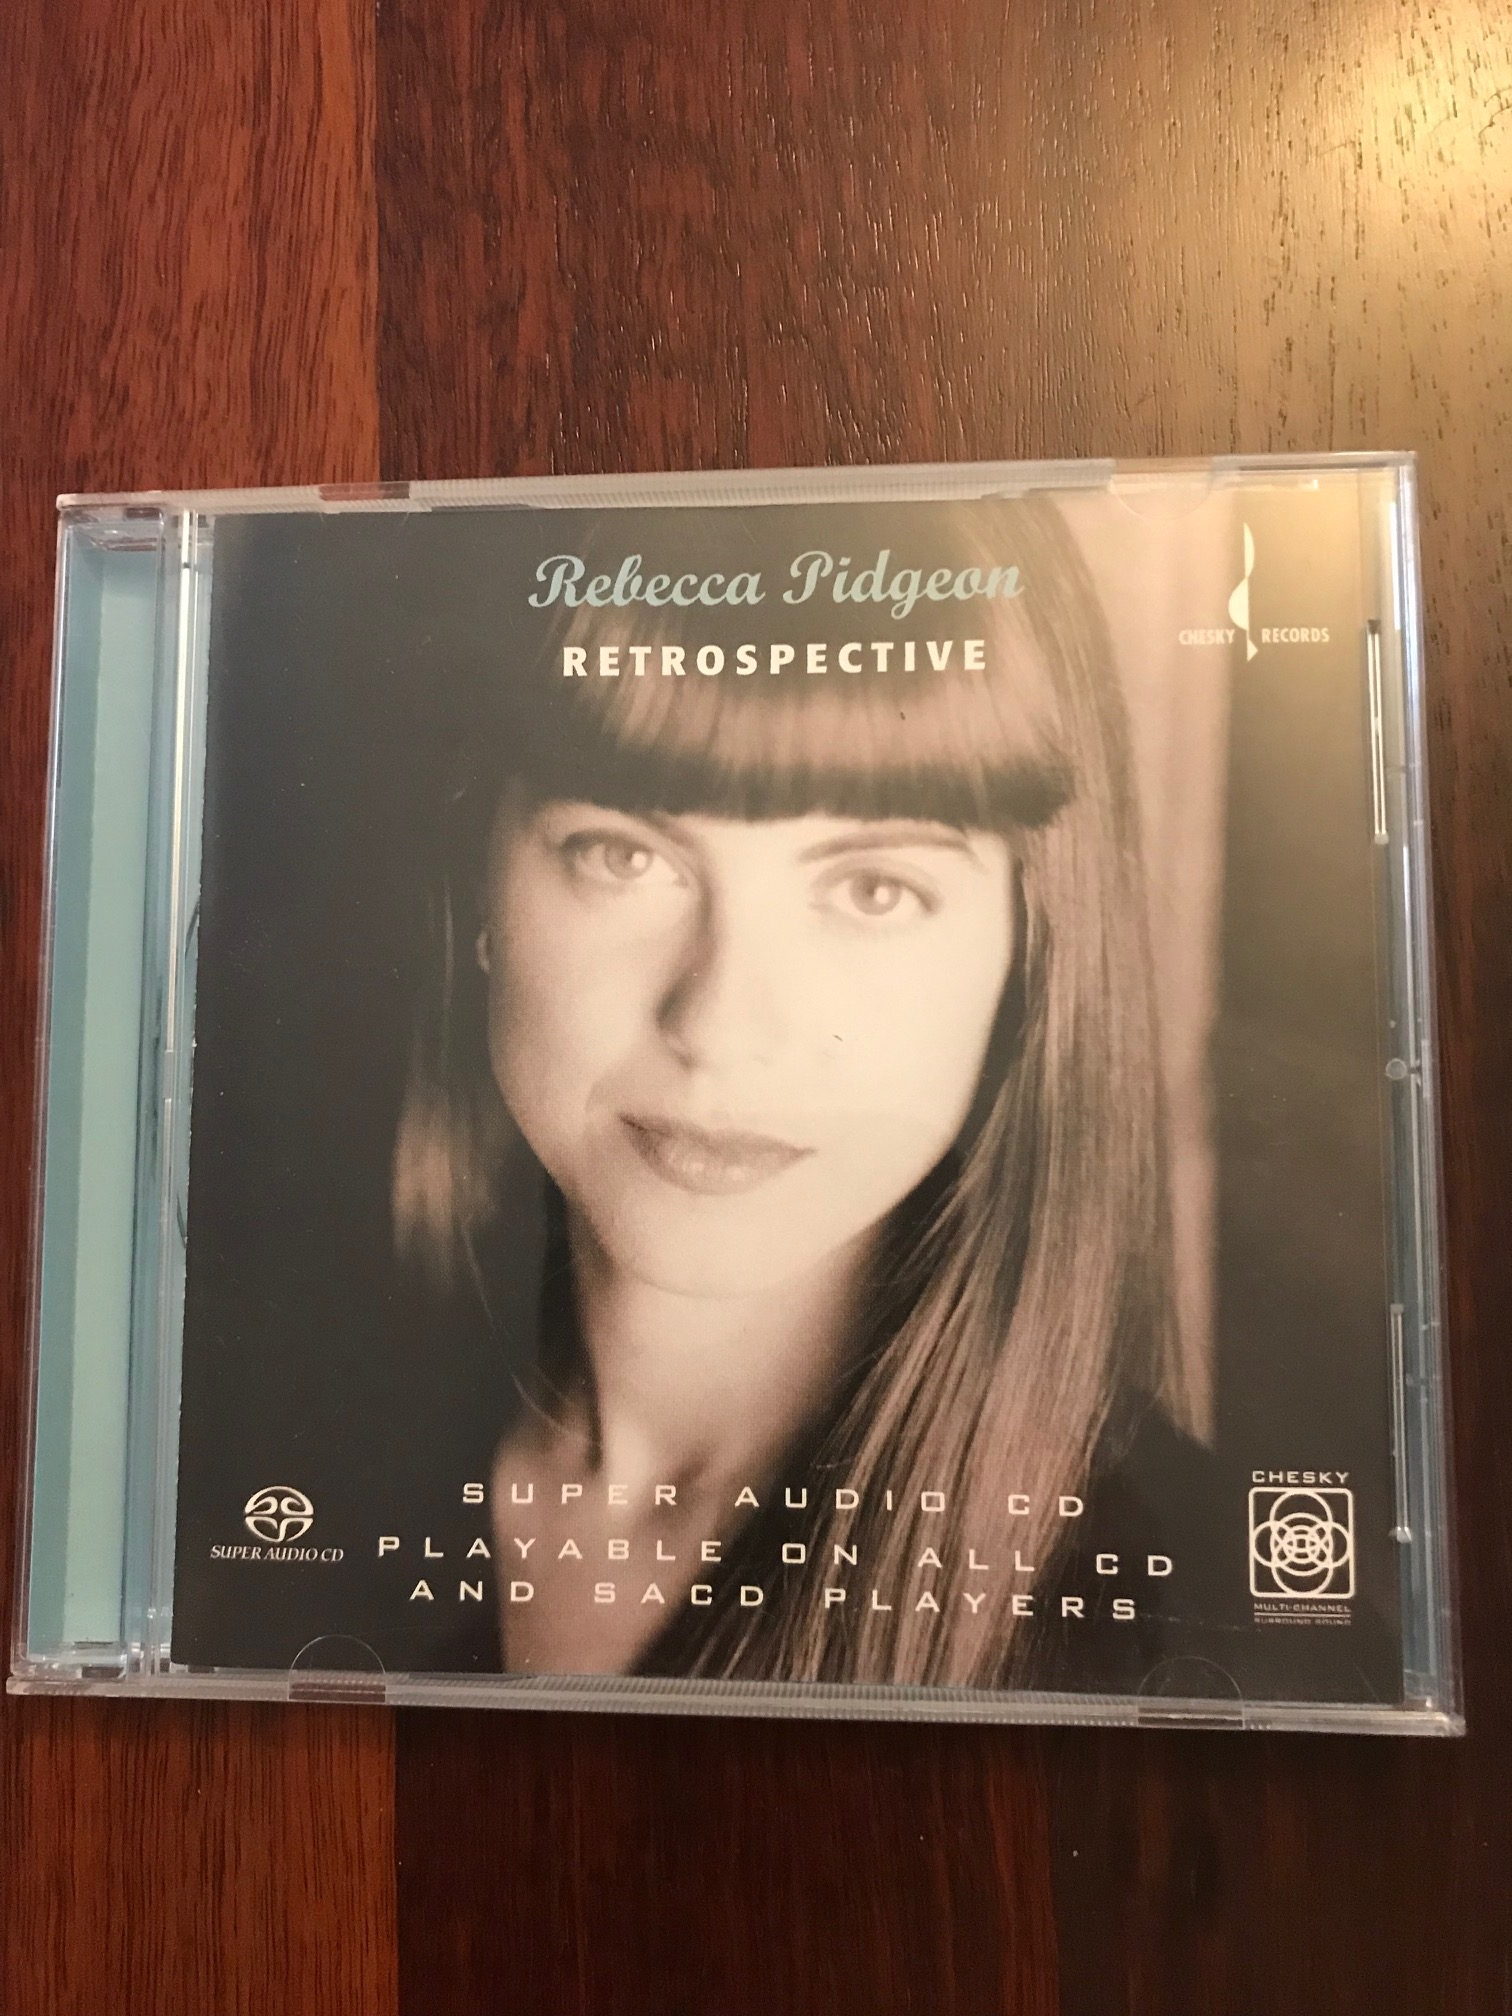 Sold Fs Female Vocals Sacd S Classifieds Vinyl Cd